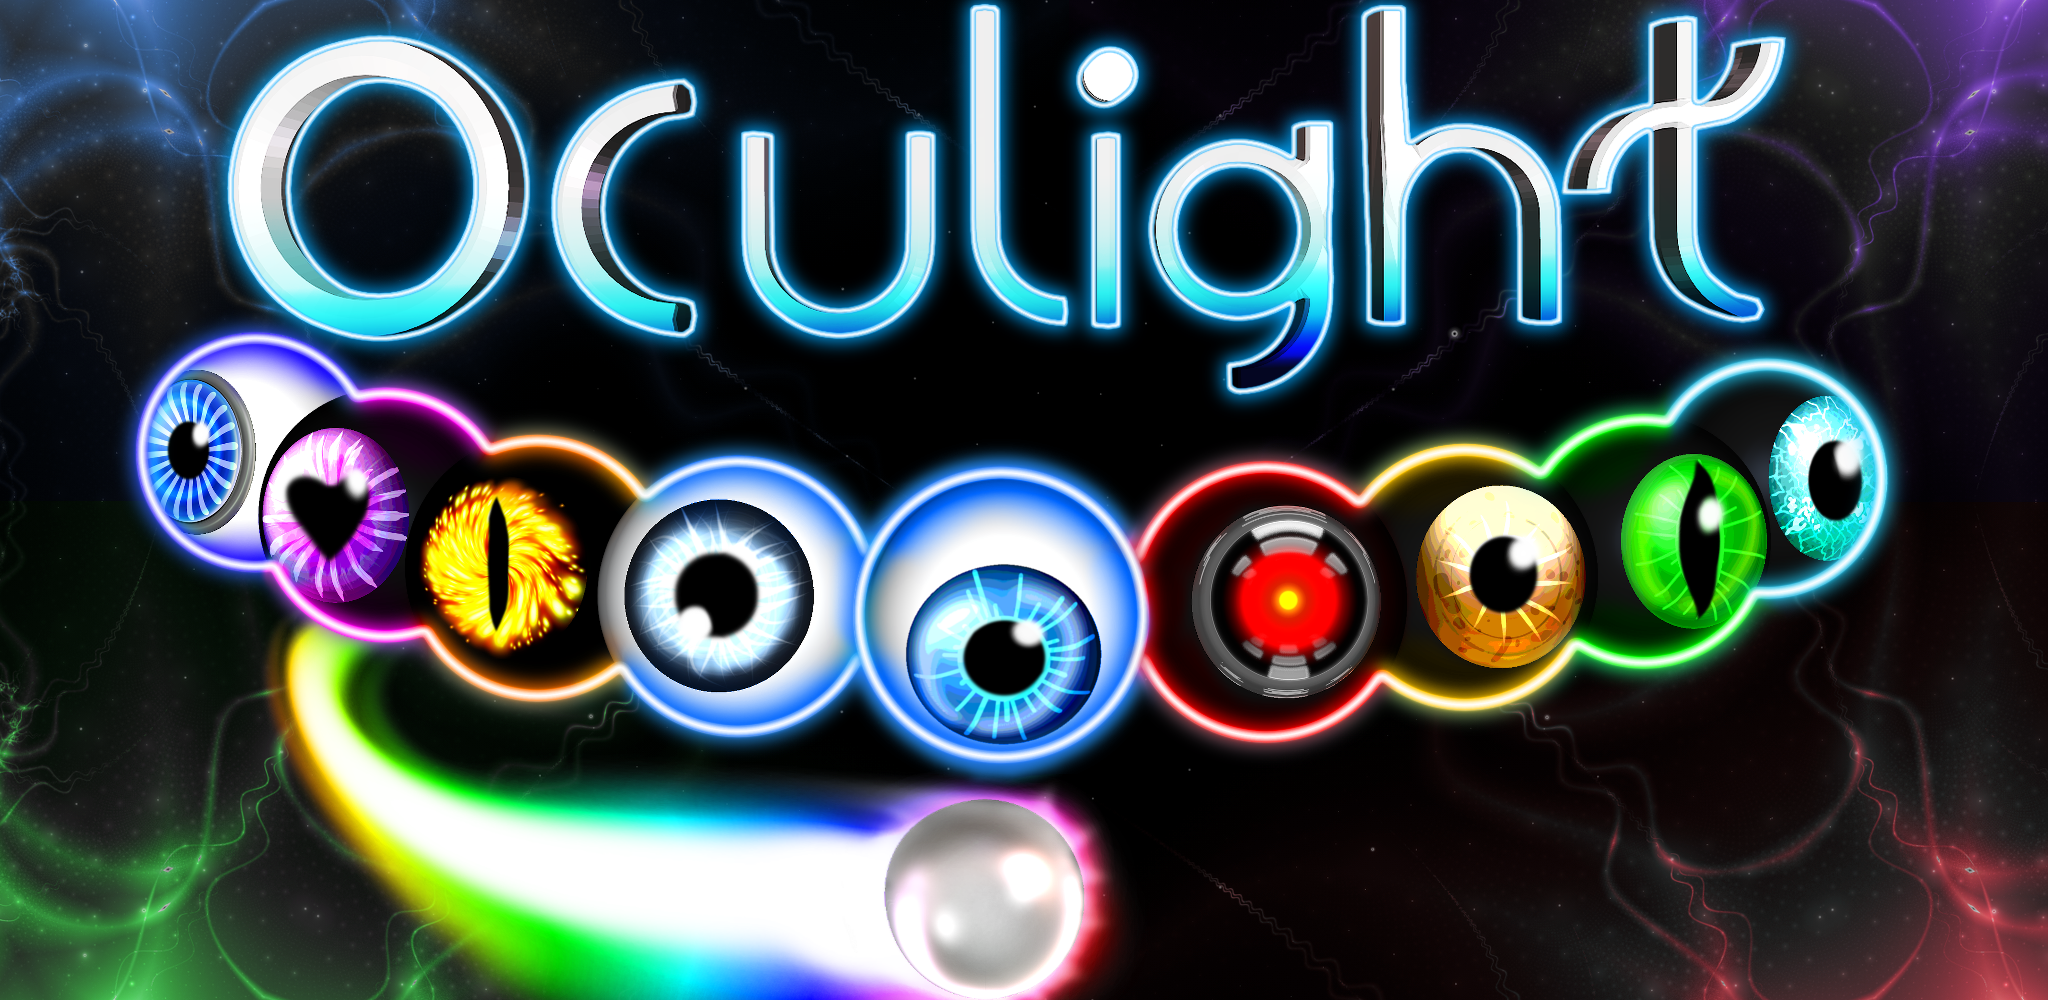 Main Title and all the oculights in formation.